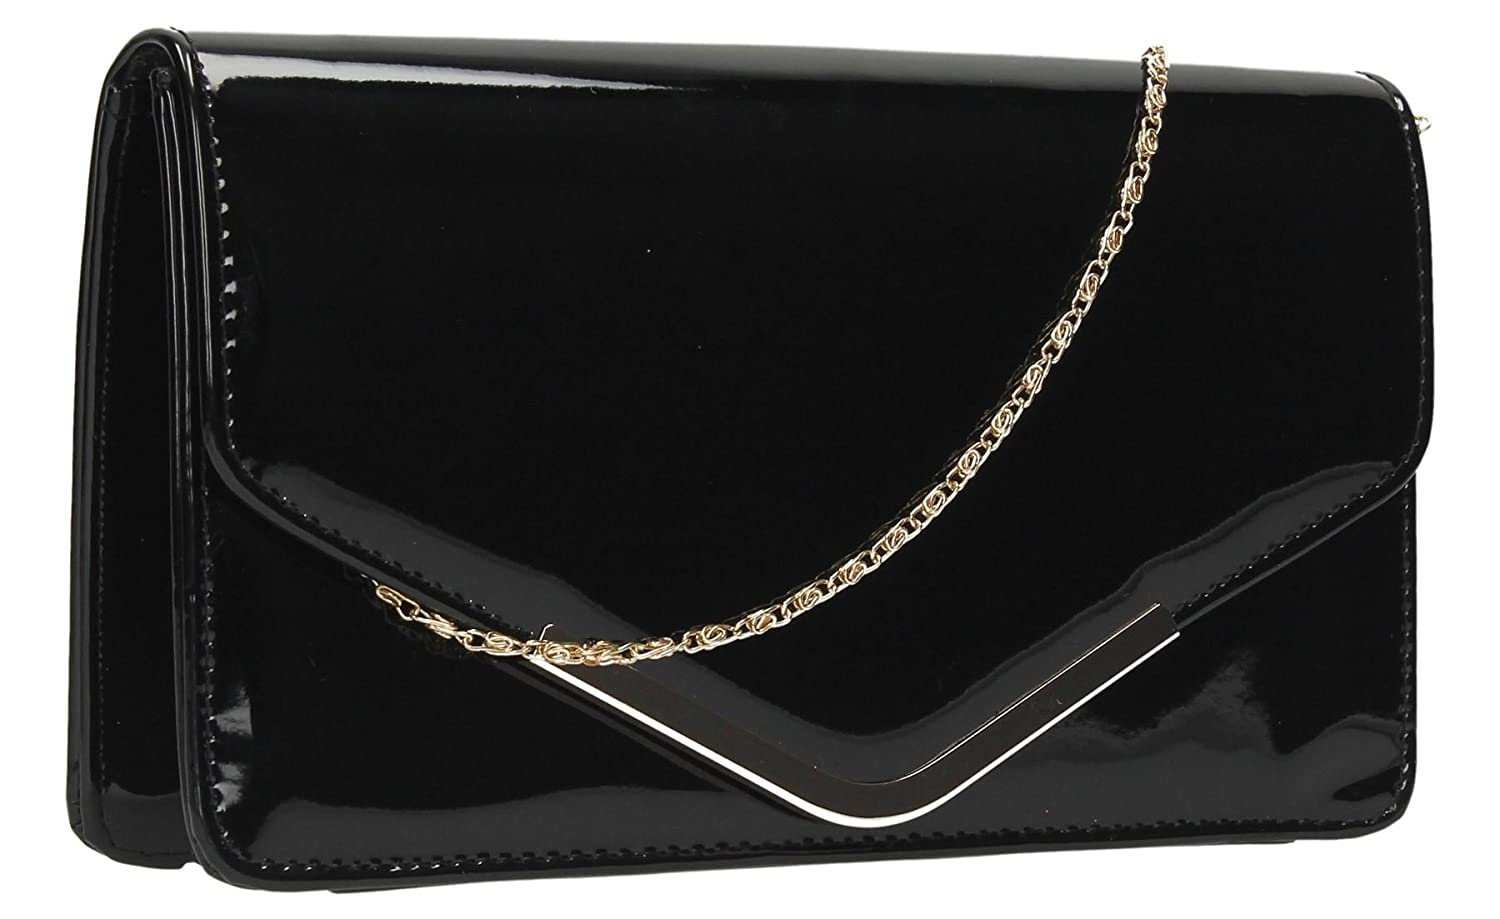 d563f76fd0 Sara Patent Leather Envelope Womens Party Prom Ladies Clutch Bag -  SWANKYSWANS